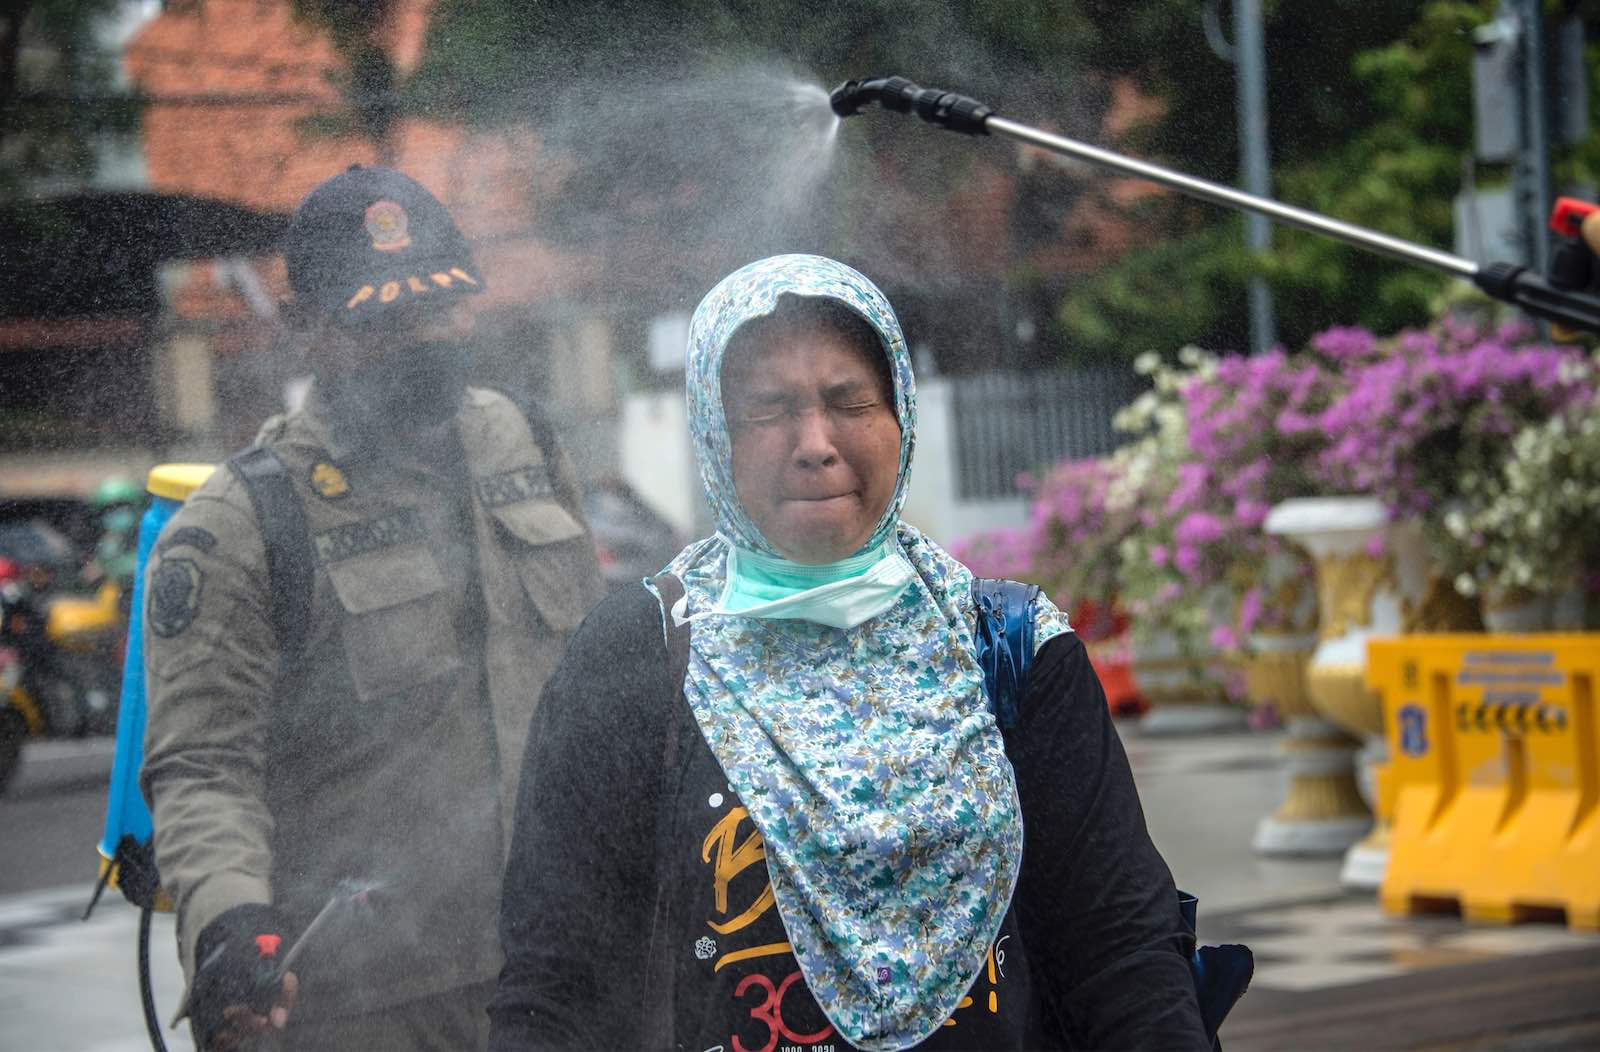 A woman is sprayed with disinfectant on Monday before entering a local government office as a precautionary move against the spread of the Covid-19 coronavirus in Surabaya, Indonesia (Juni Kriswanto/AFP/Getty Images)